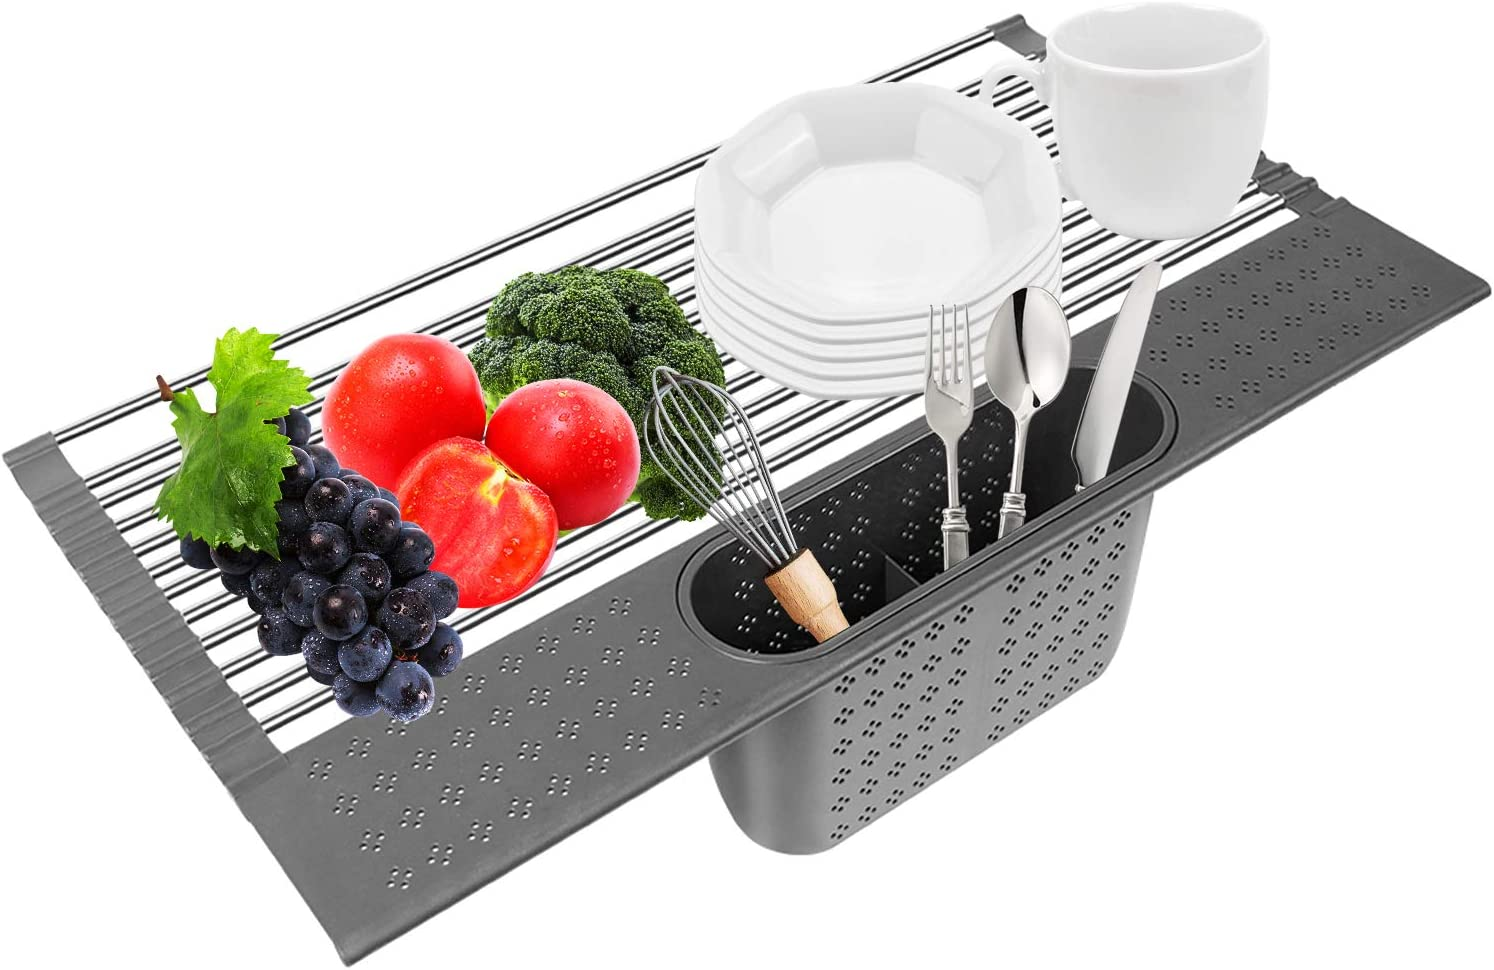 Roll Up Dish Drying Rack Large Save money Over Sink with S Atlanta Mall The Multipurpose